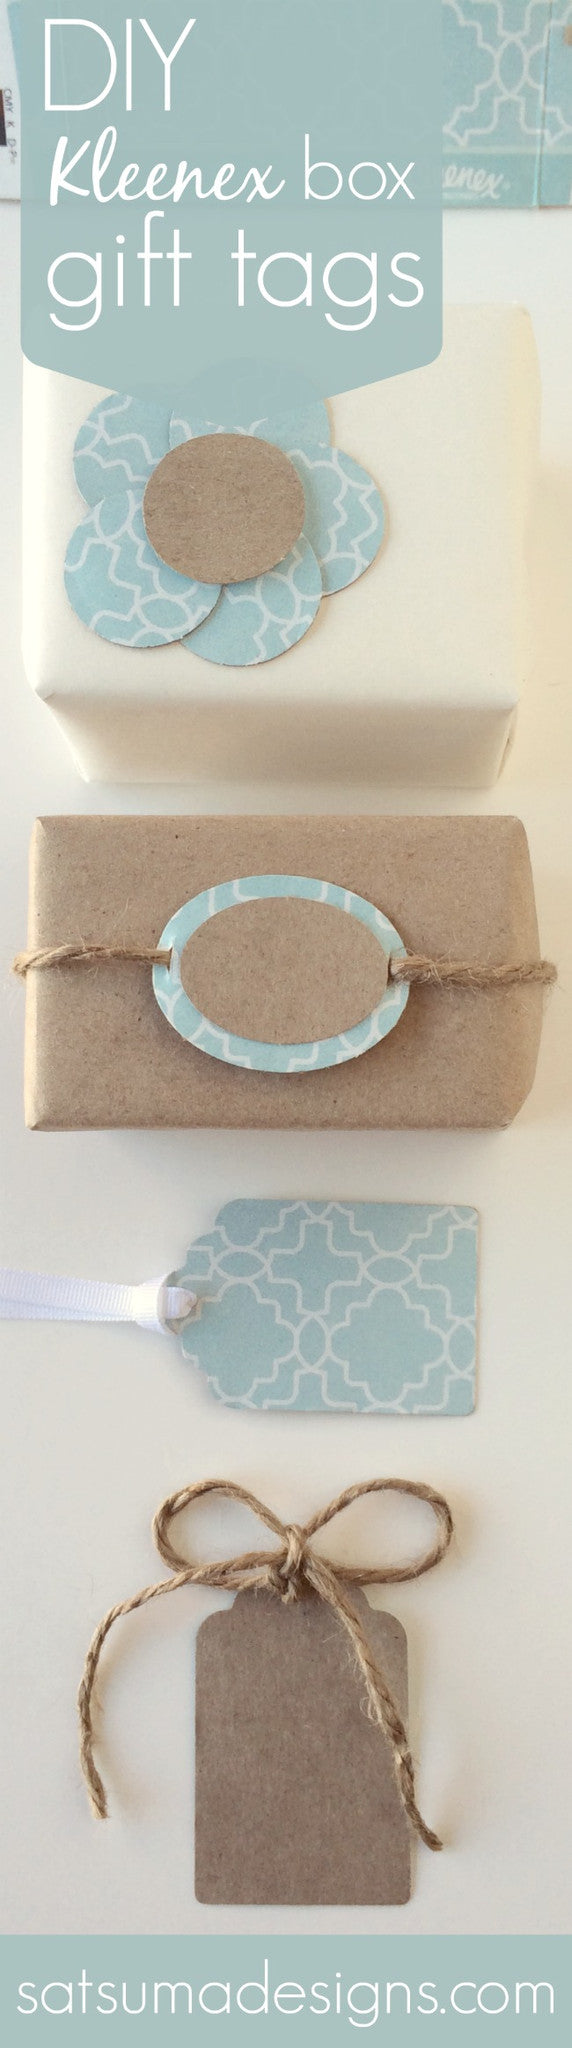 DIY Kleenex Box Gift Tags